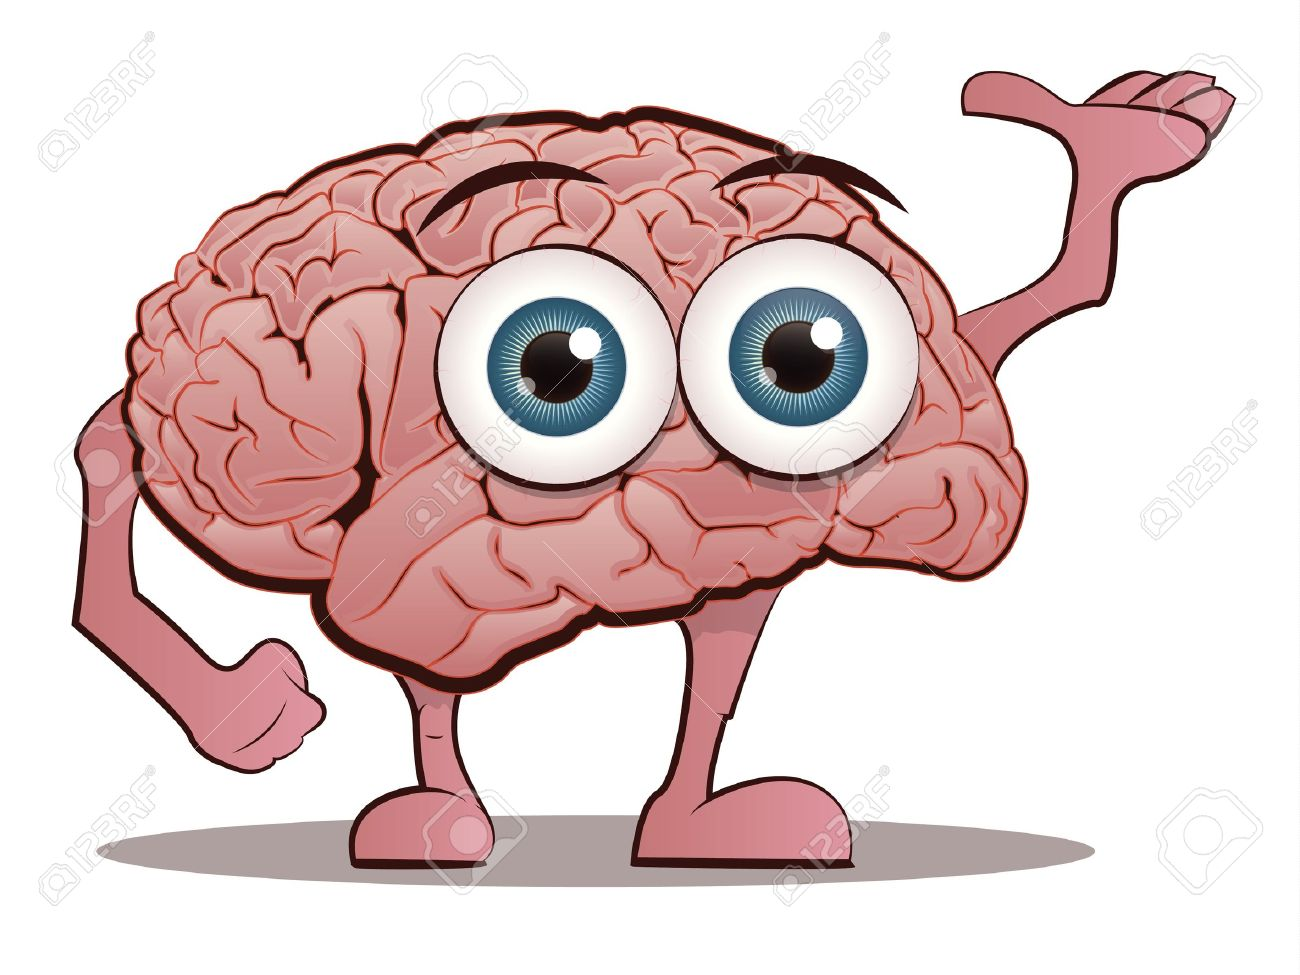 Brain Character with Hands and Feet Stock Vector - 14585525